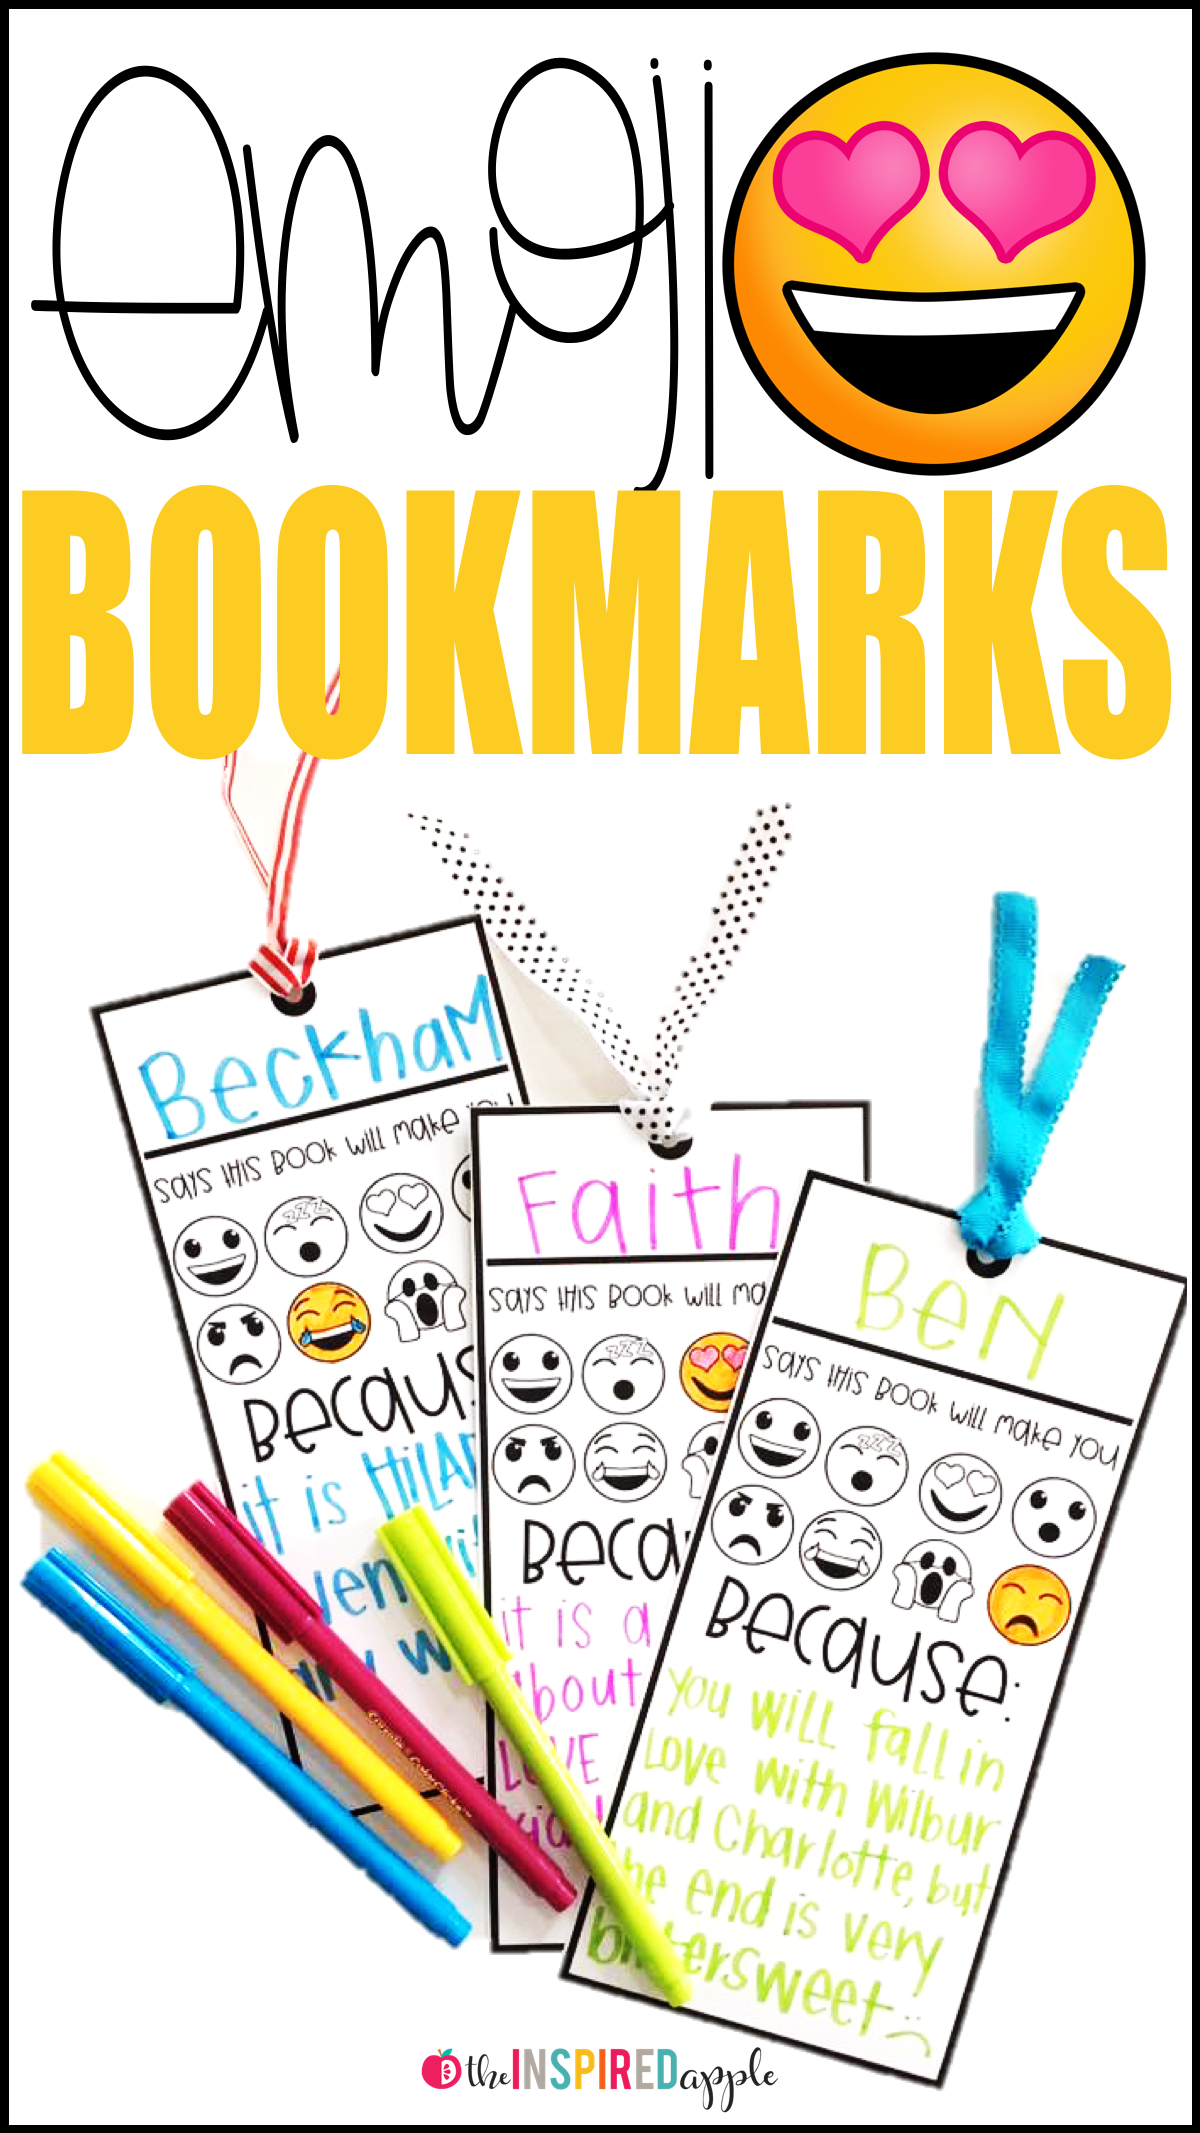 Are you looking for a great alternative to writing lengthy book reports that is engaging, fun, and perfect for kiddos in first, second, third, fourth, and fifth grade? Check out this condensed book report idea where students can write simplified book revi